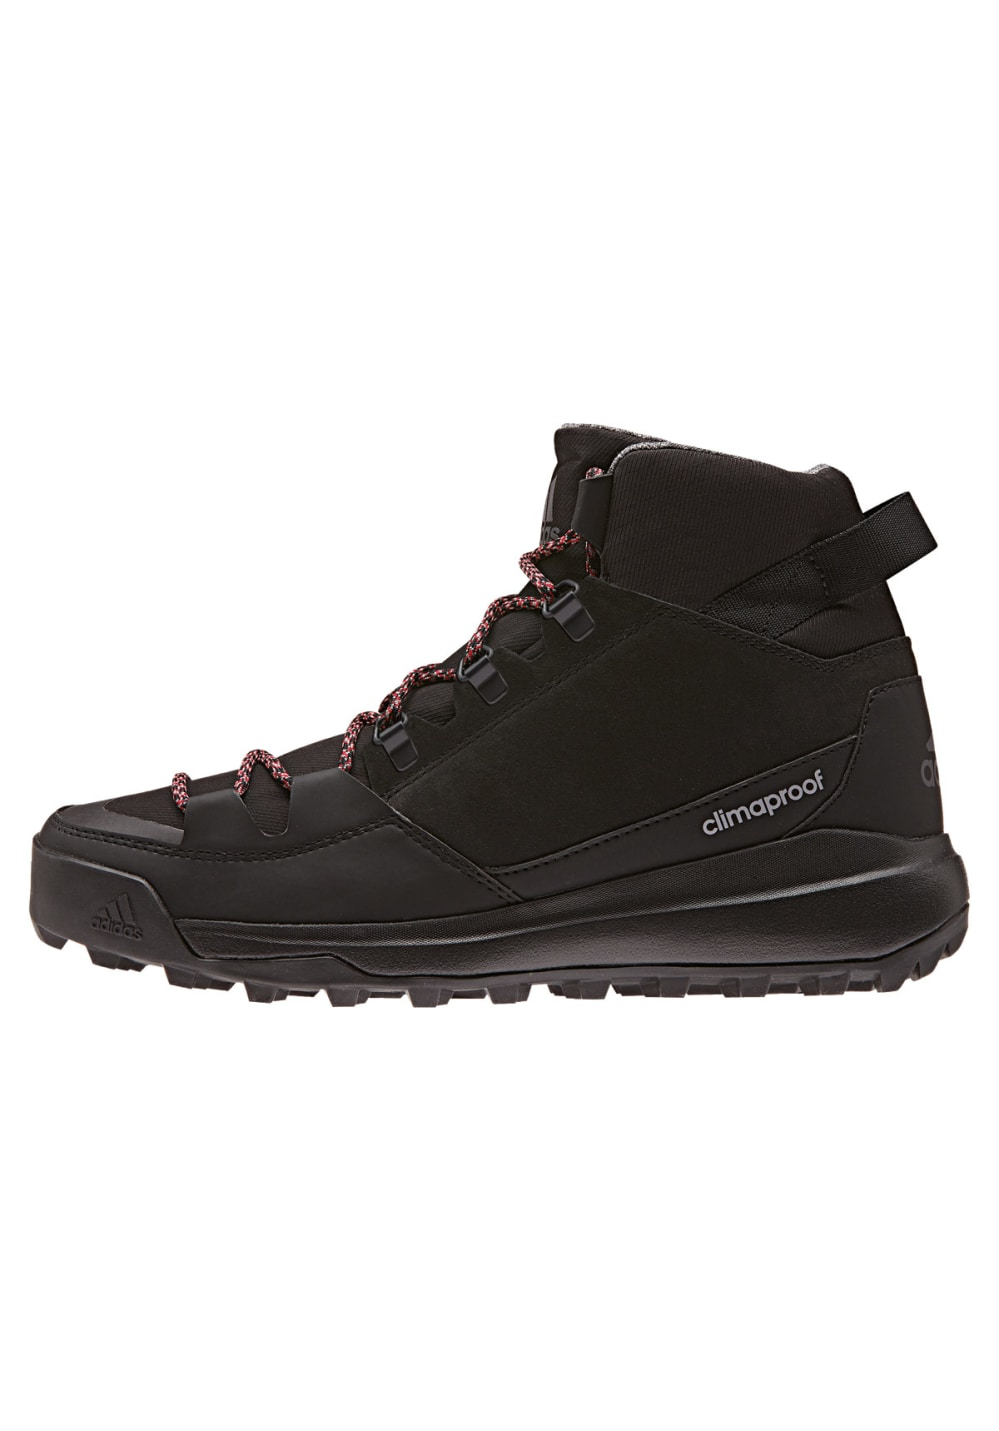 61a53907d3bbfc adidas Winterpitch Mid CP CW - Outdoor shoes for Men - Black